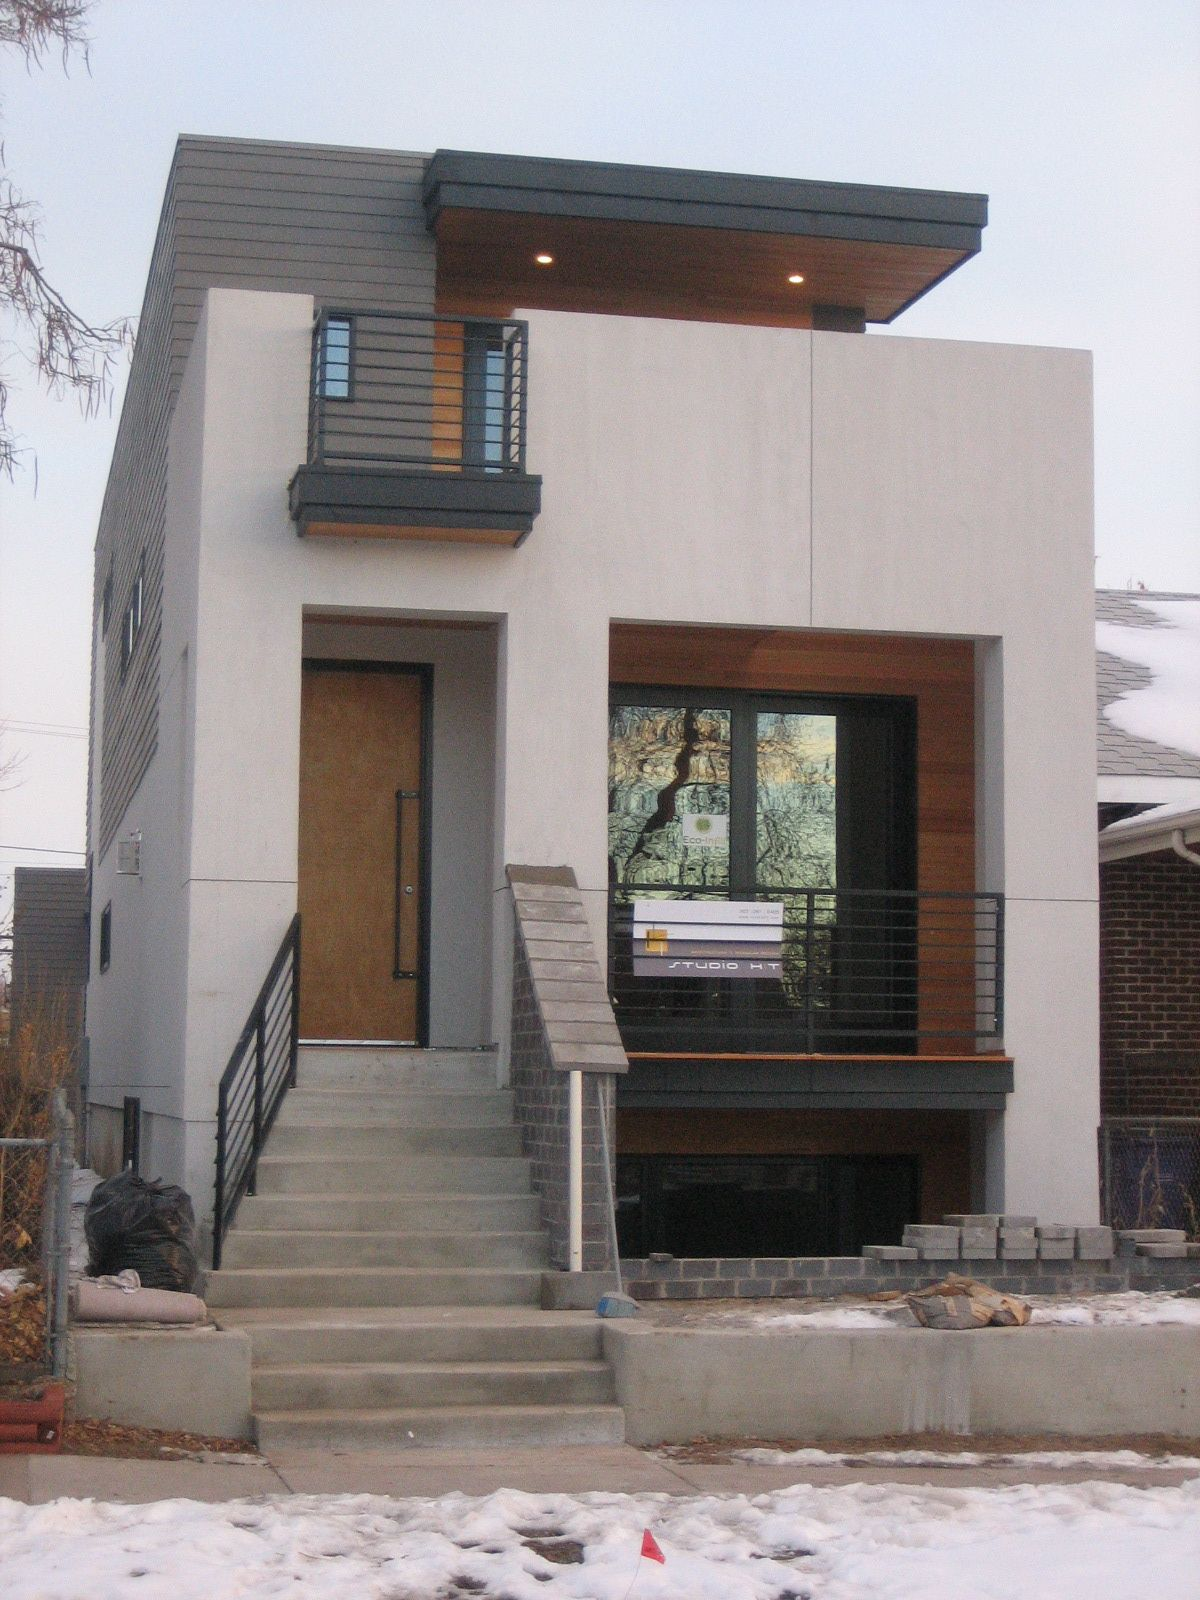 Astounding Modern Prefab House Design Awesome Small